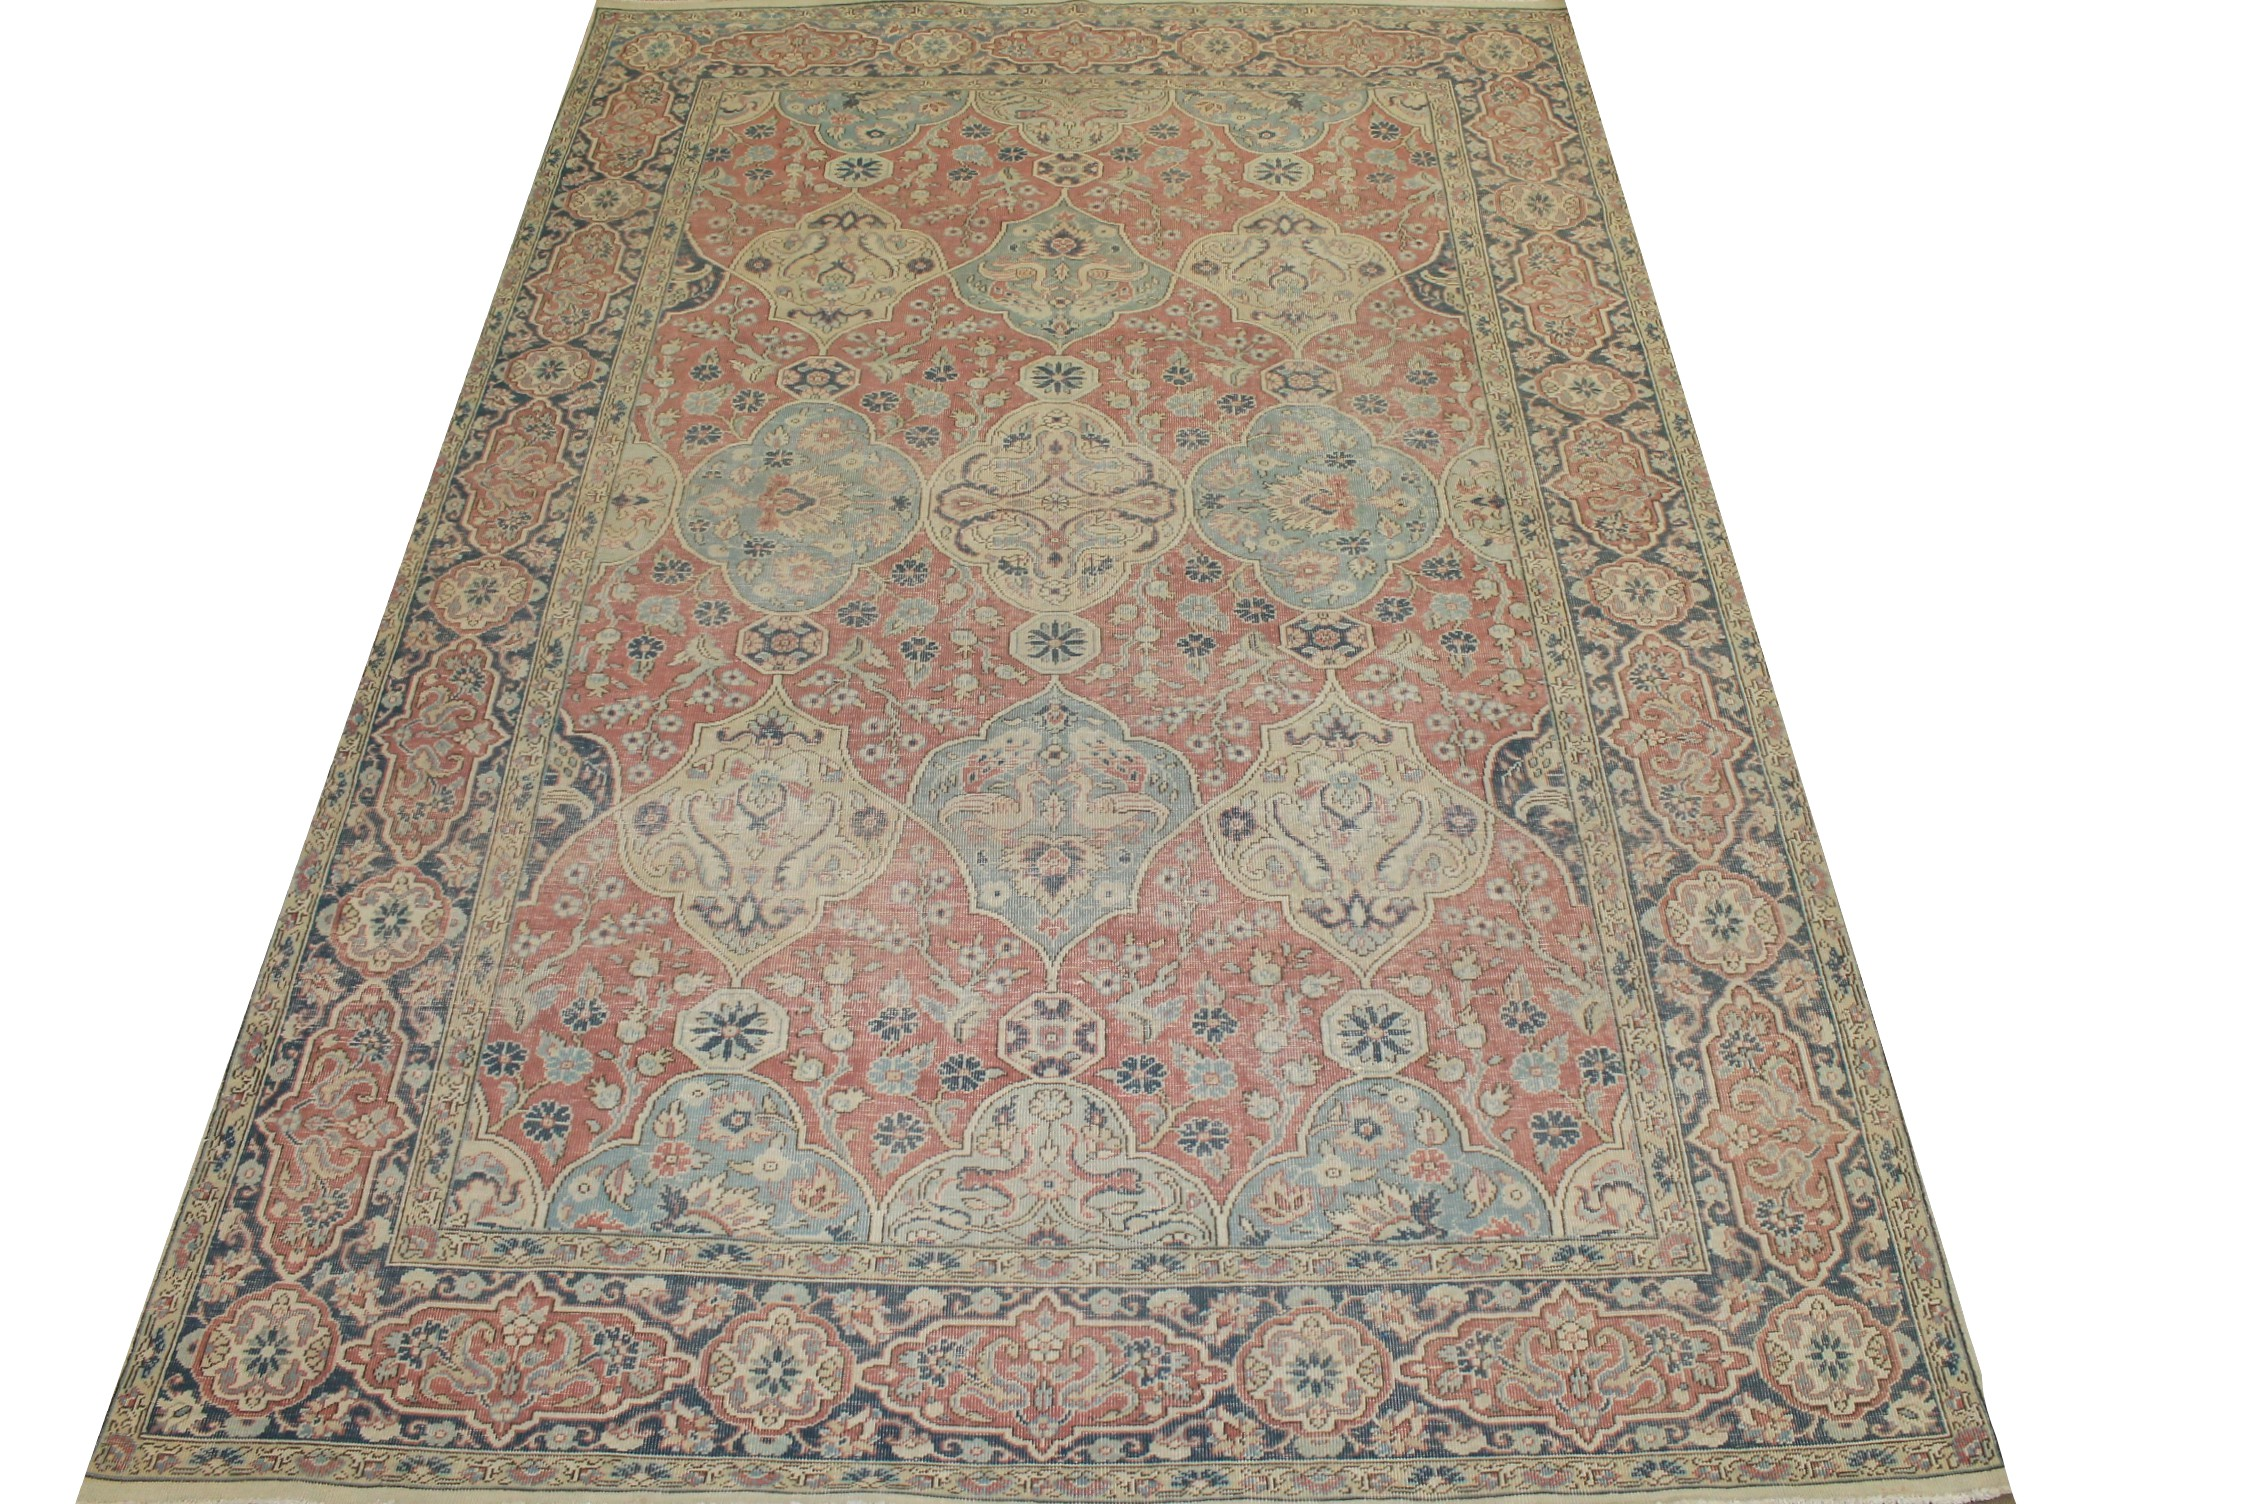 9x12 Vintage Hand Knotted Wool Area Rug - MR025326